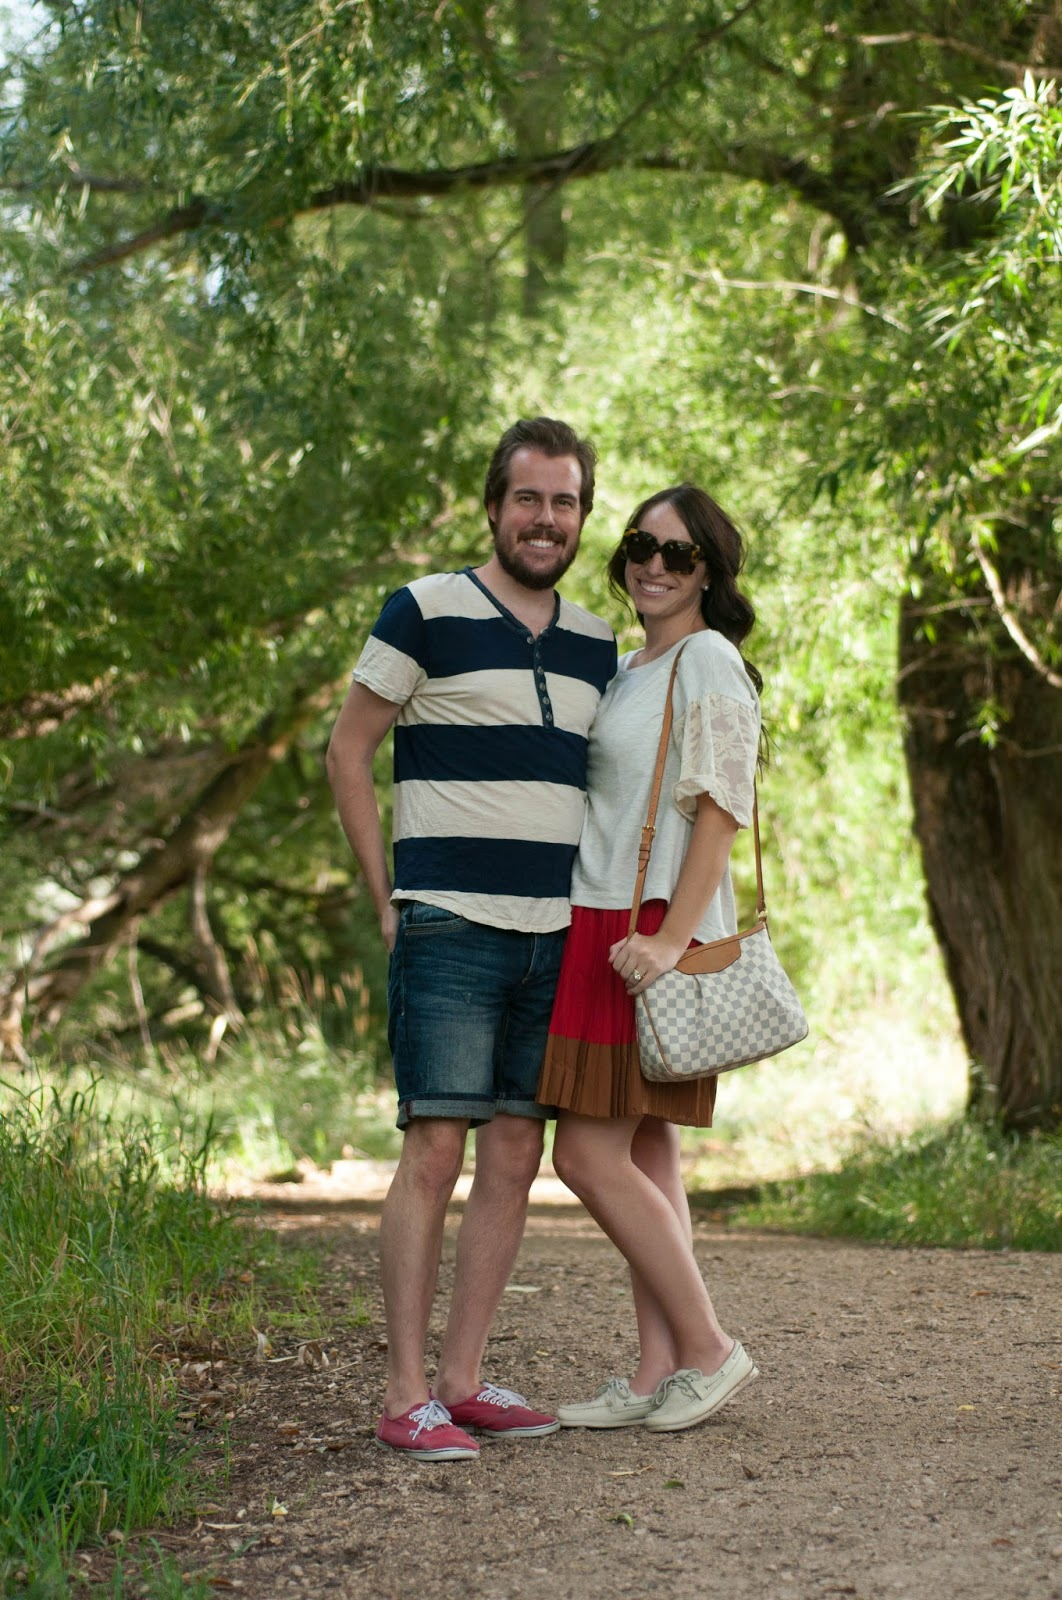 couples style, couples fashion, ootd, couples fashion blog, anthropologie ootd, his and her fashion